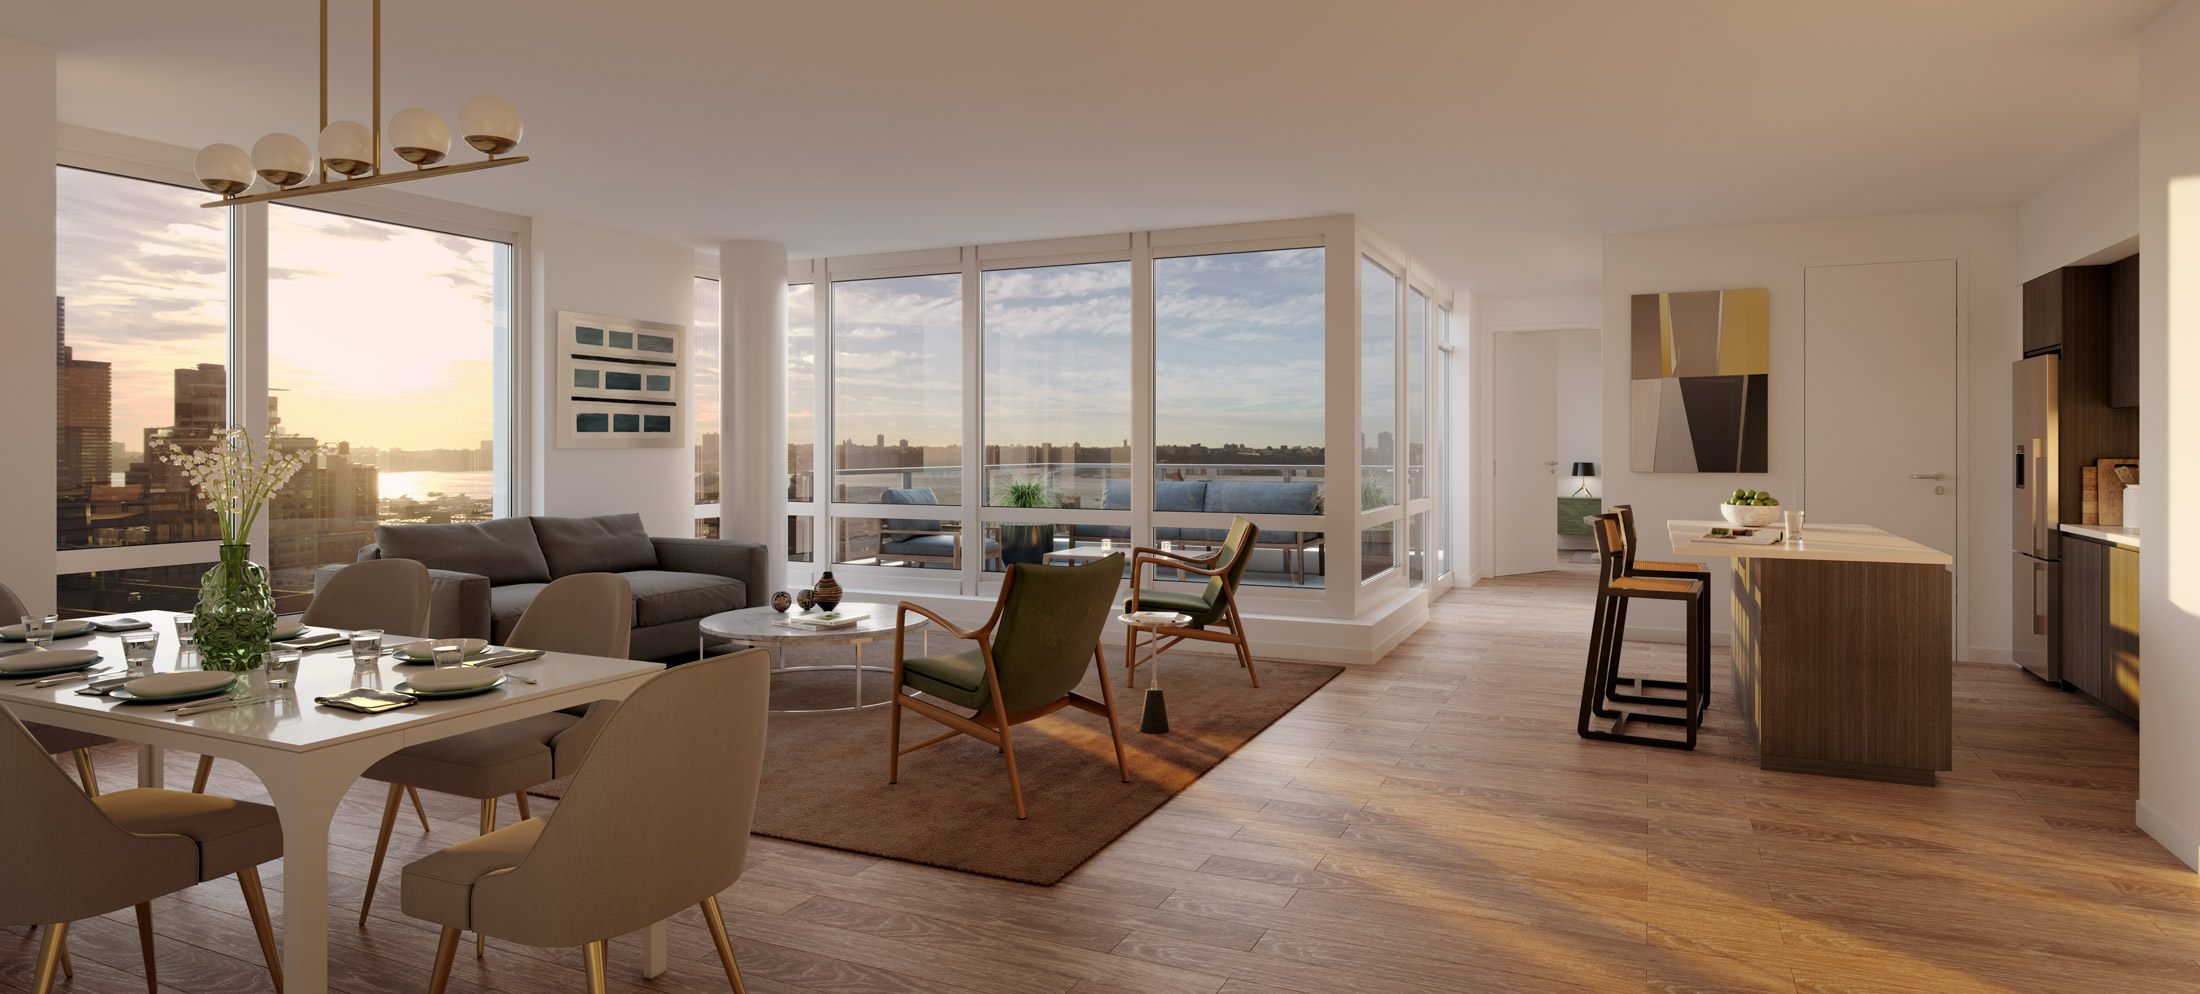 Architectural Rendering of the living room of the 525 West 52nd Street project located in Hell's Kitchen, New York City